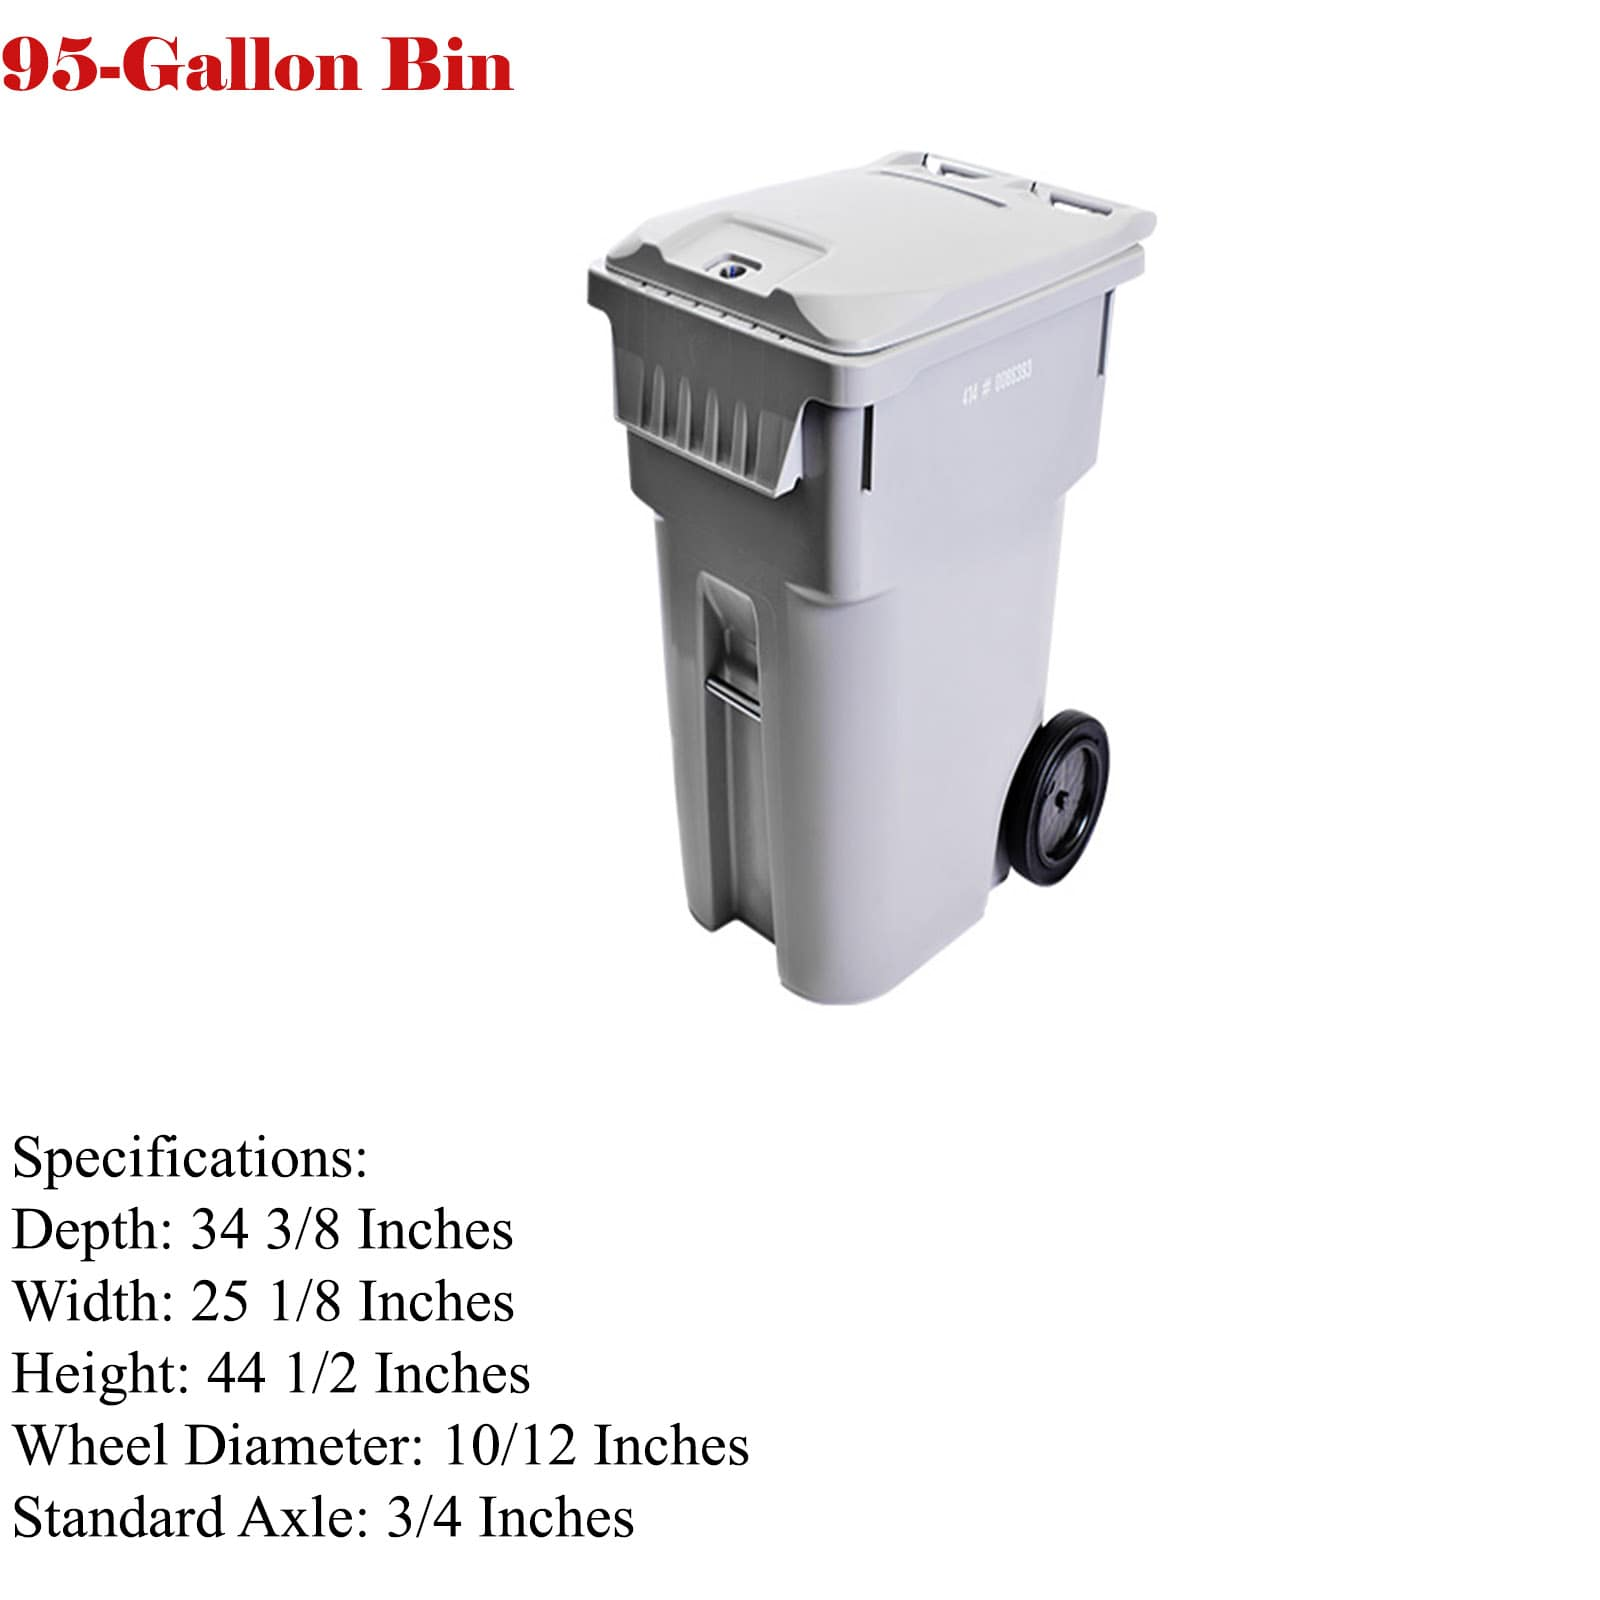 95- gallons